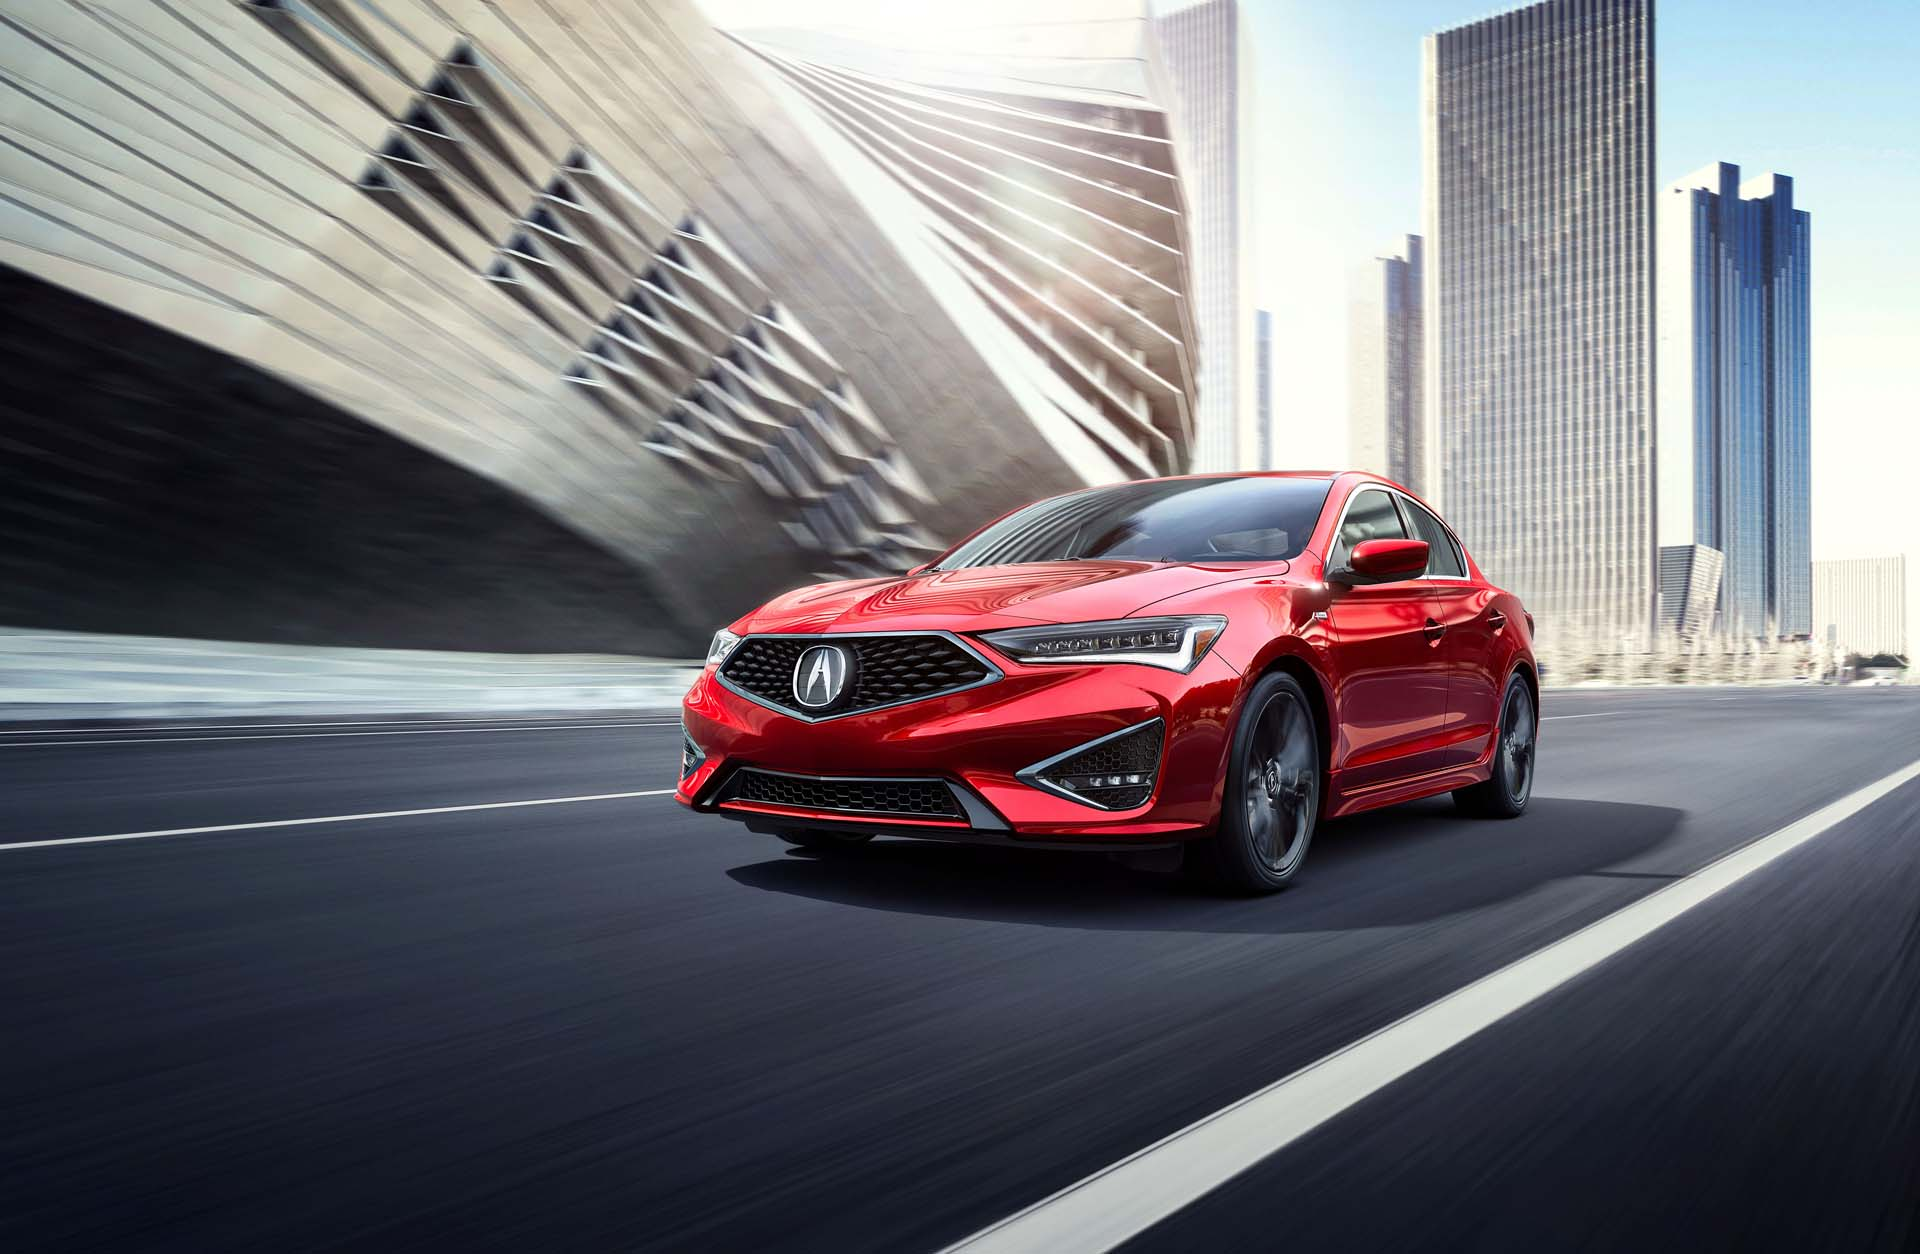 Which Features are Standard on the 2019 Acura ILX?